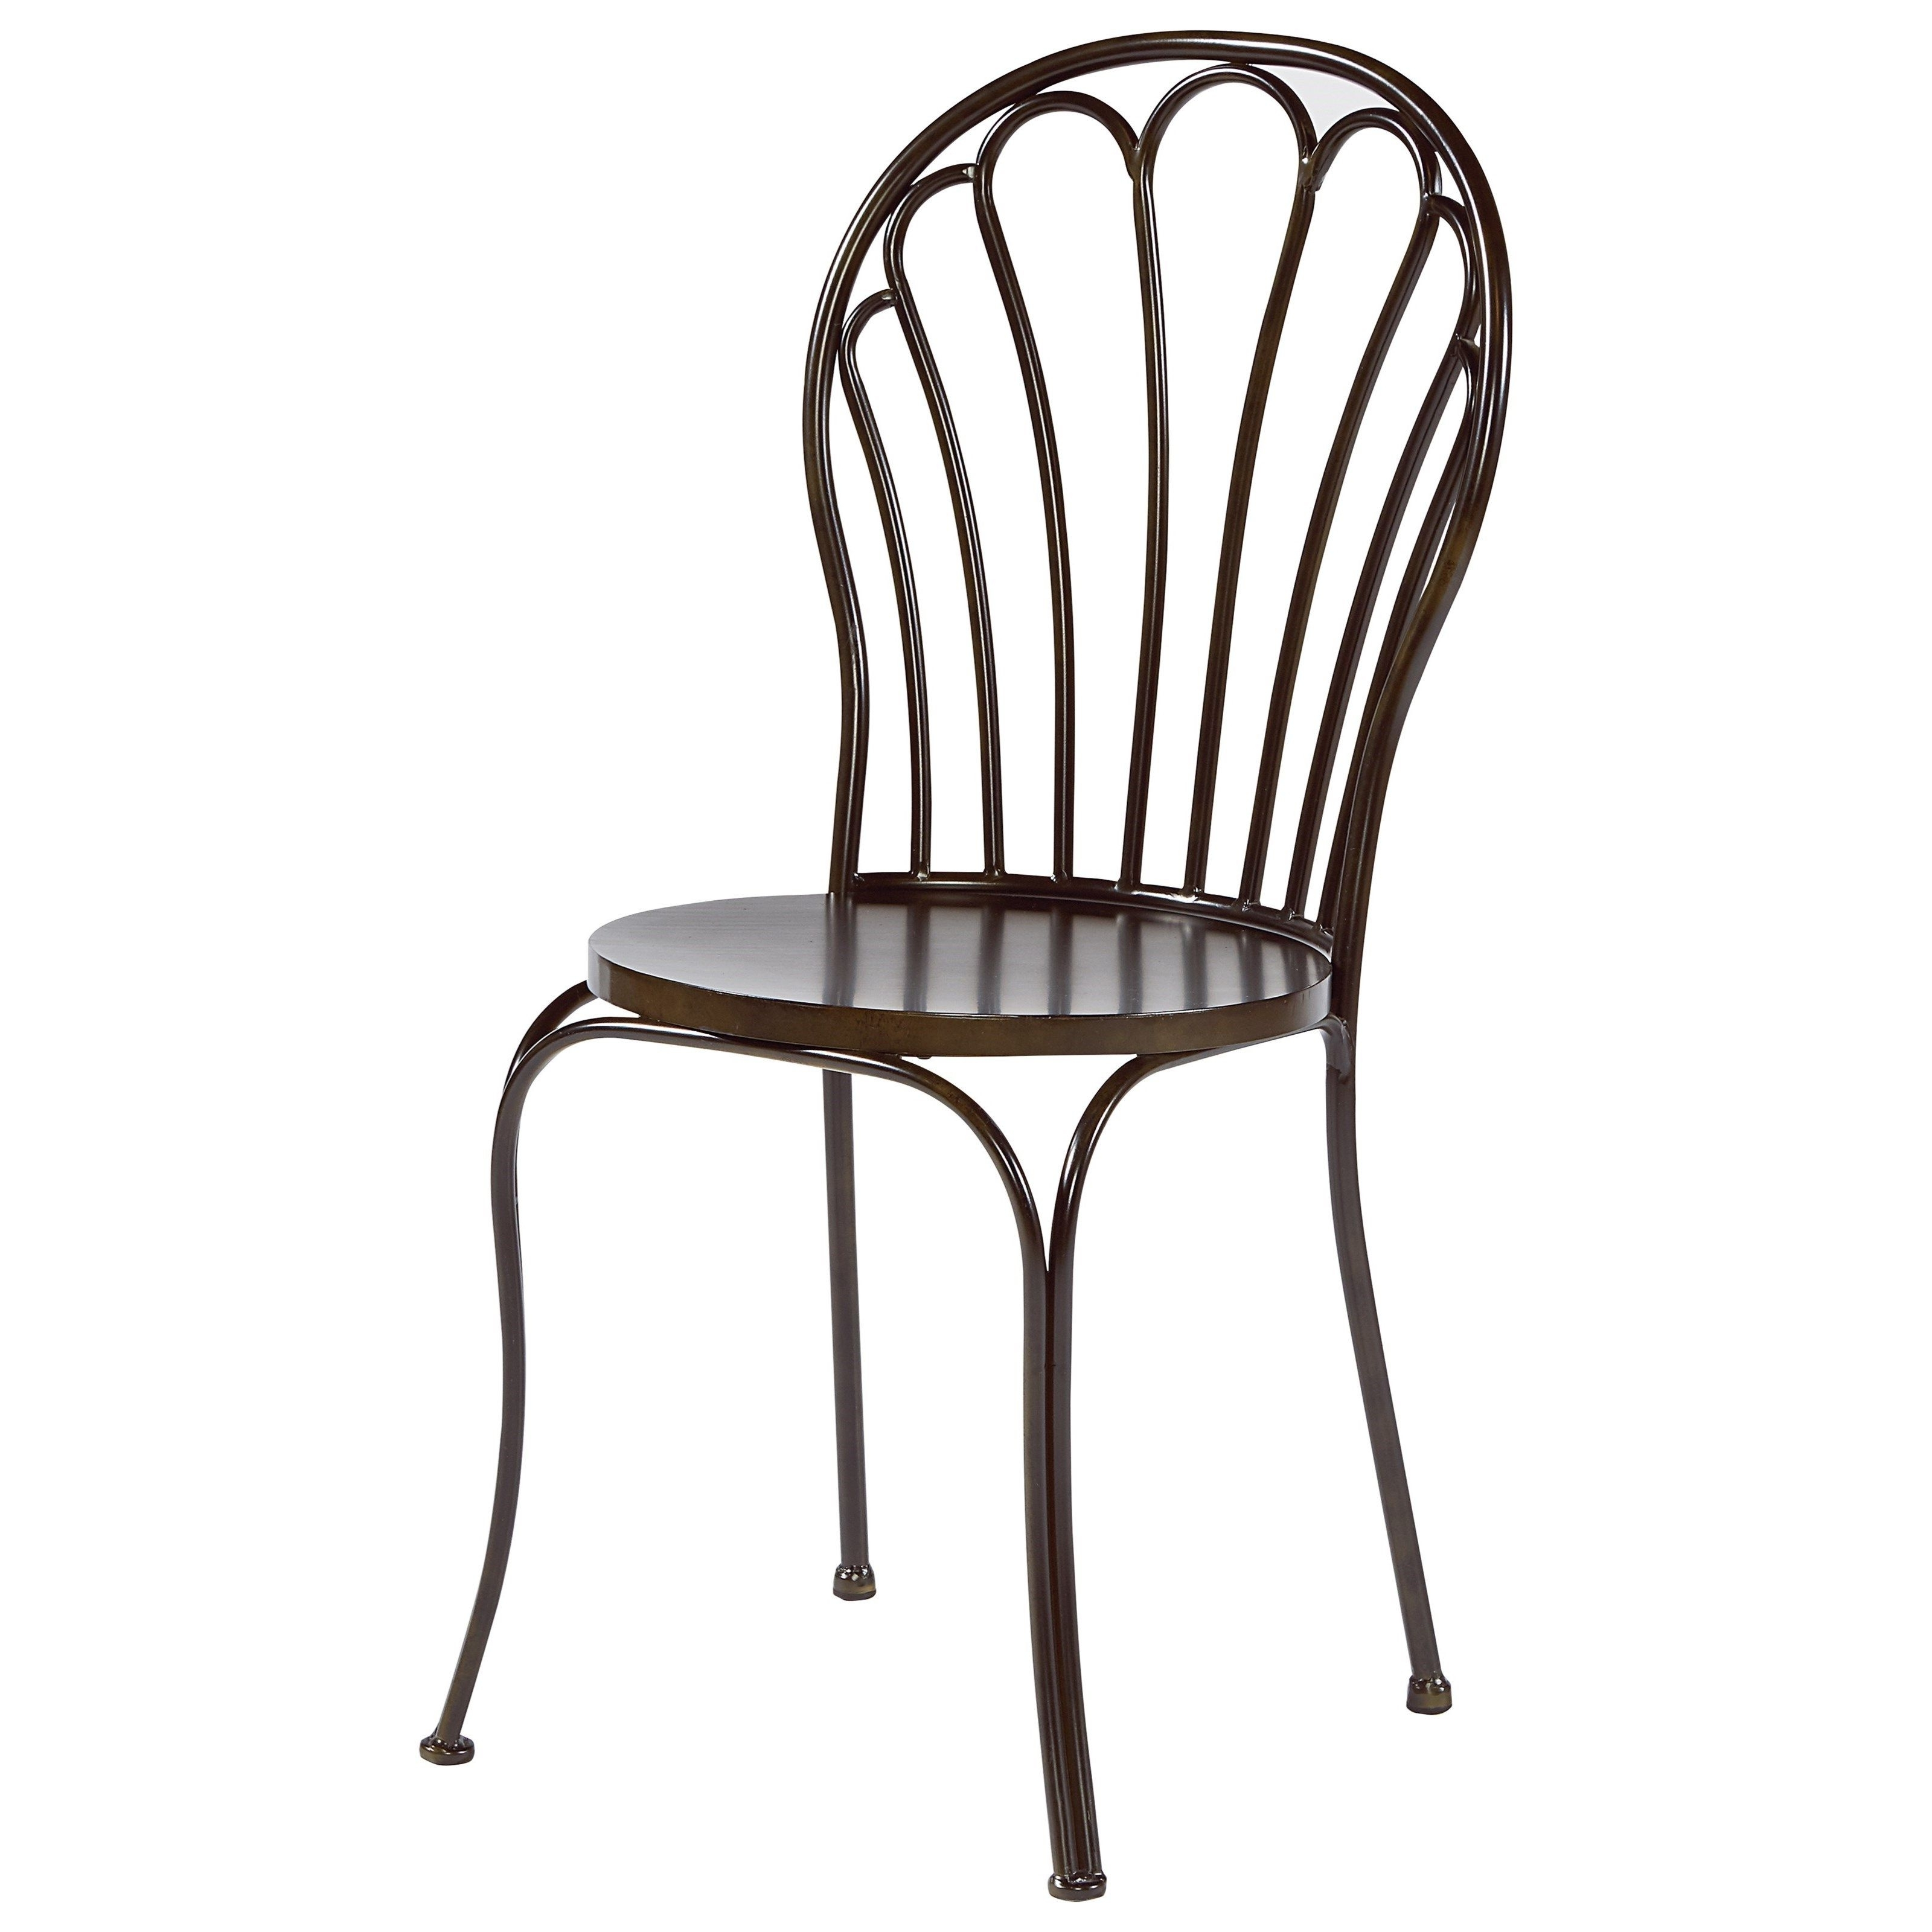 Magnolia Home Kempton Bench Side Chairs Regarding Trendy Primitive Metal Peacock Chairmagnolia Homejoanna Gaines At (View 8 of 20)